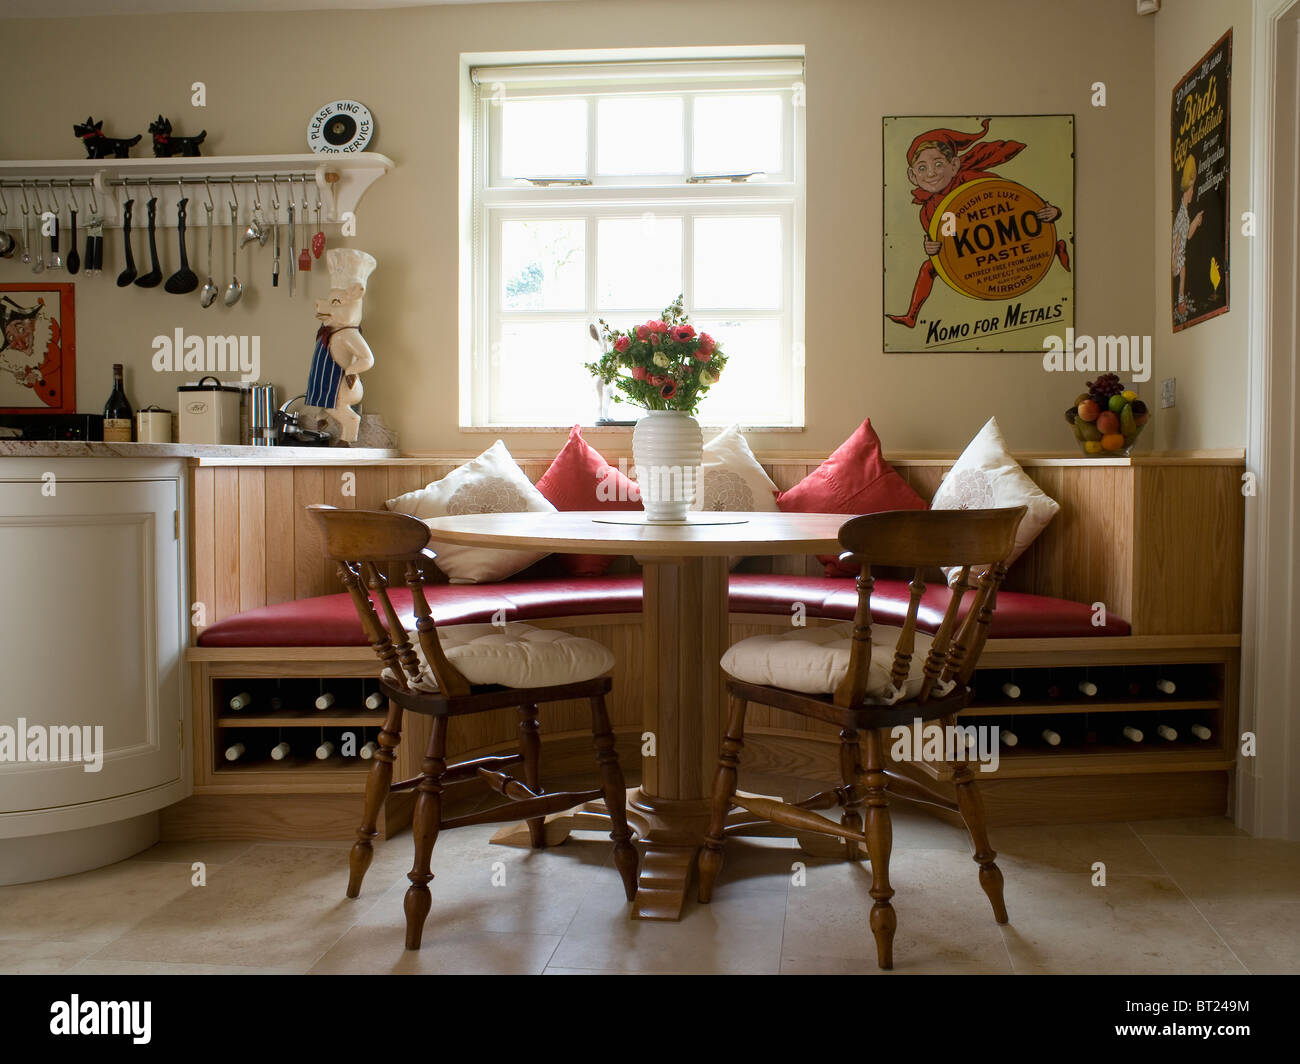 https://c8.alamy.com/comp/BT249M/circular-table-and-old-wooden-chairs-in-kitchen-dining-room-with-fitted-BT249M.jpg